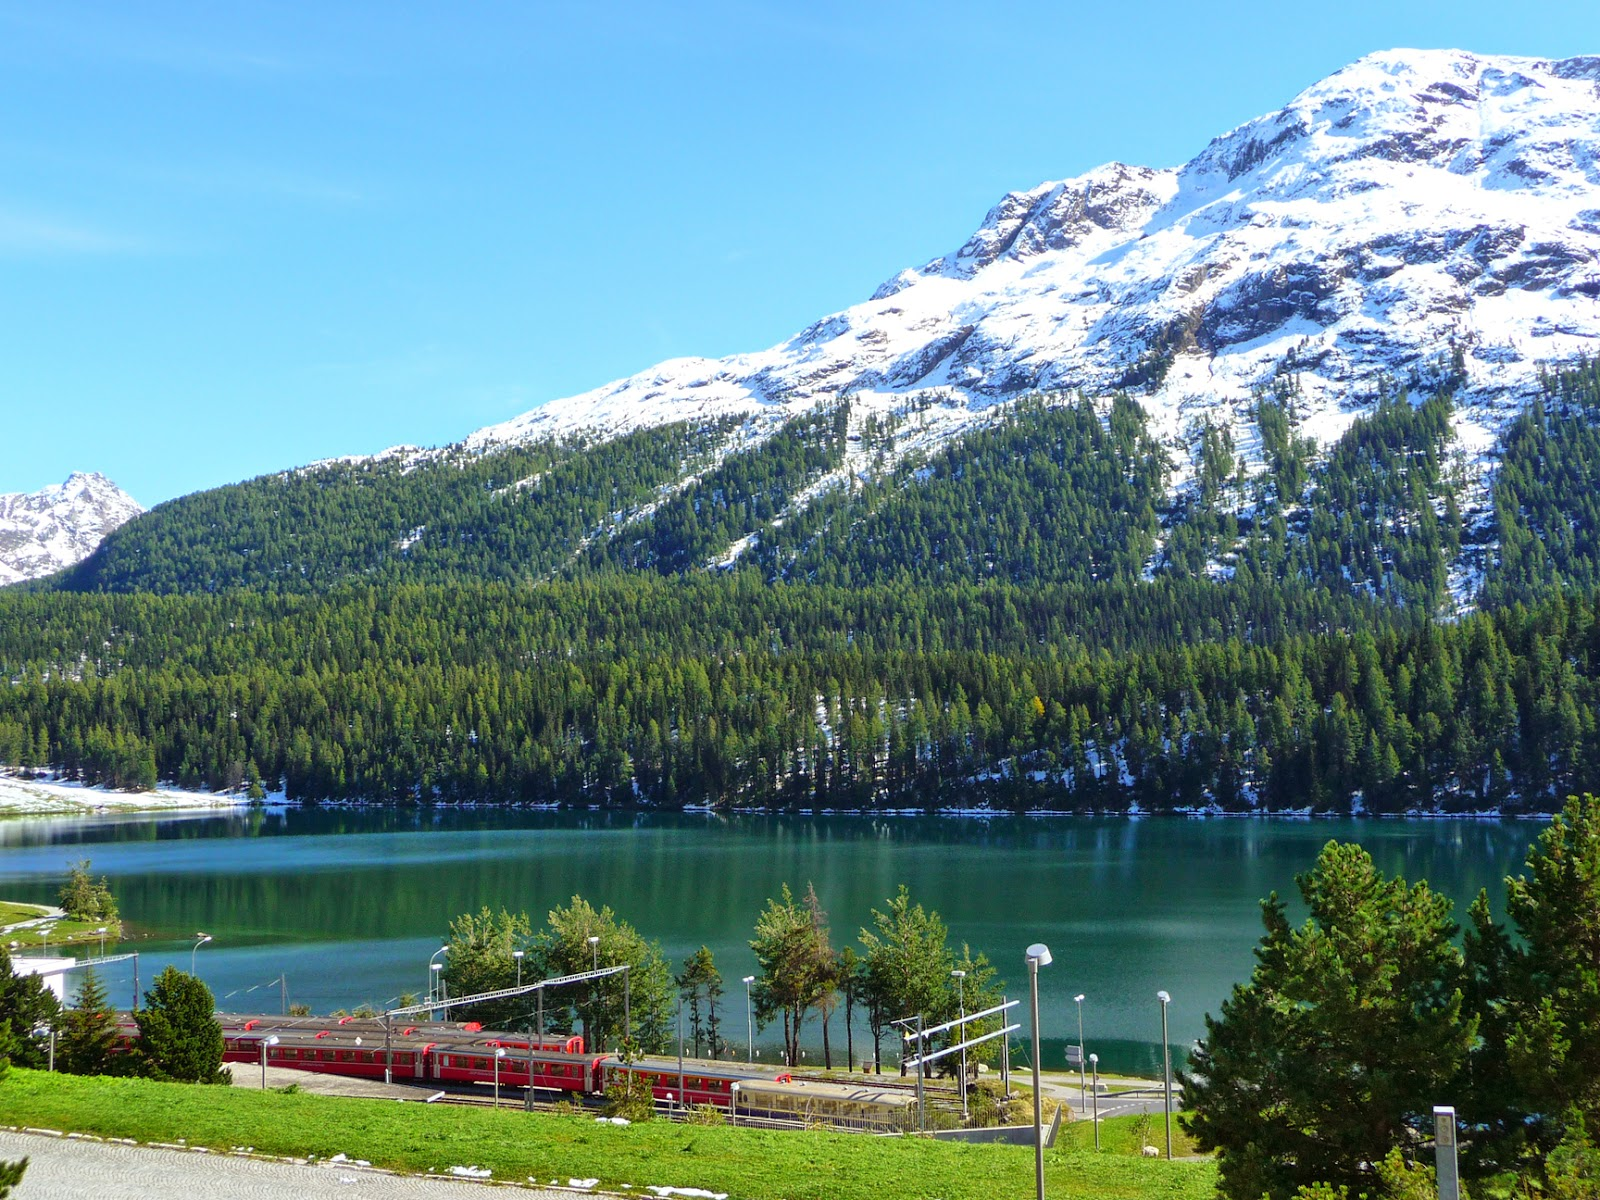 The St. Moritz Railway Station © 2014 For The Love Of Italy